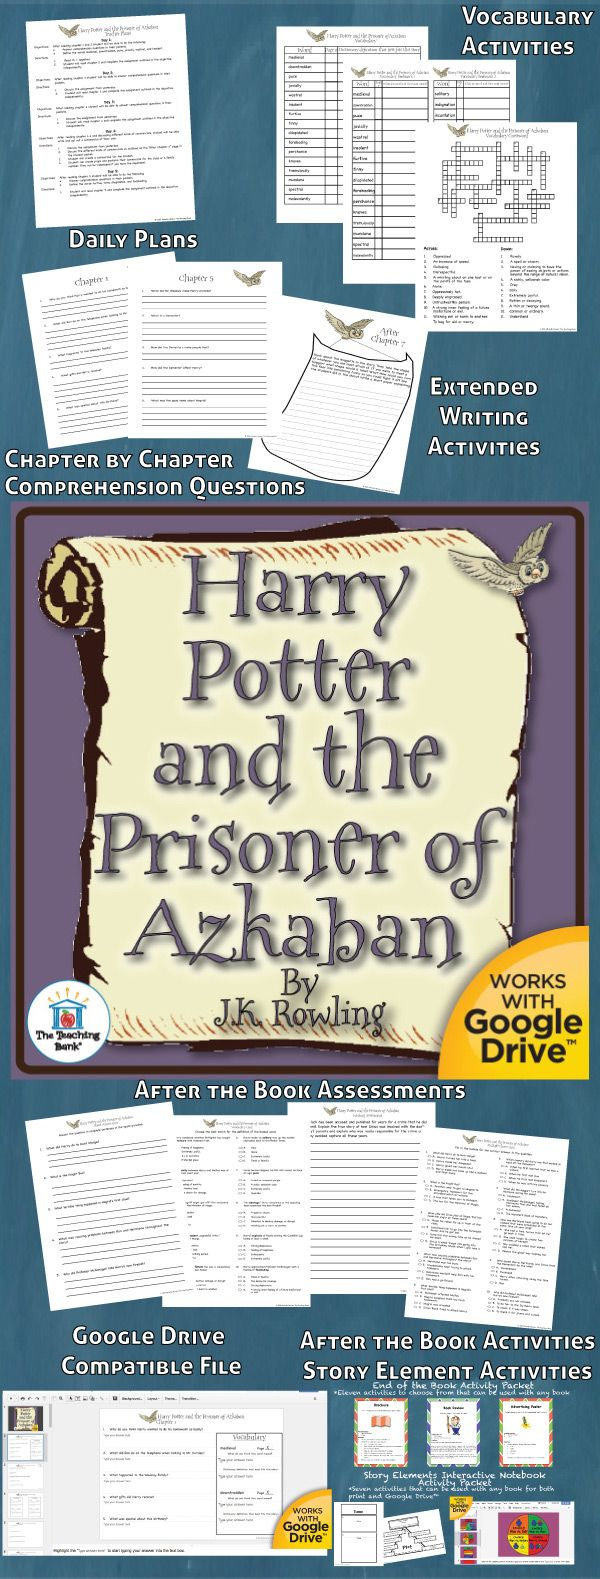 Harry Potter and the Prisoner of Azkaban Novel Study is a Common Core Standard aligned book unit to be used with Harry Potter and the Prisoner of Azkaban by J.K. Rowling. This download contains both a printable format as well as a Google Drive™ compatible format.